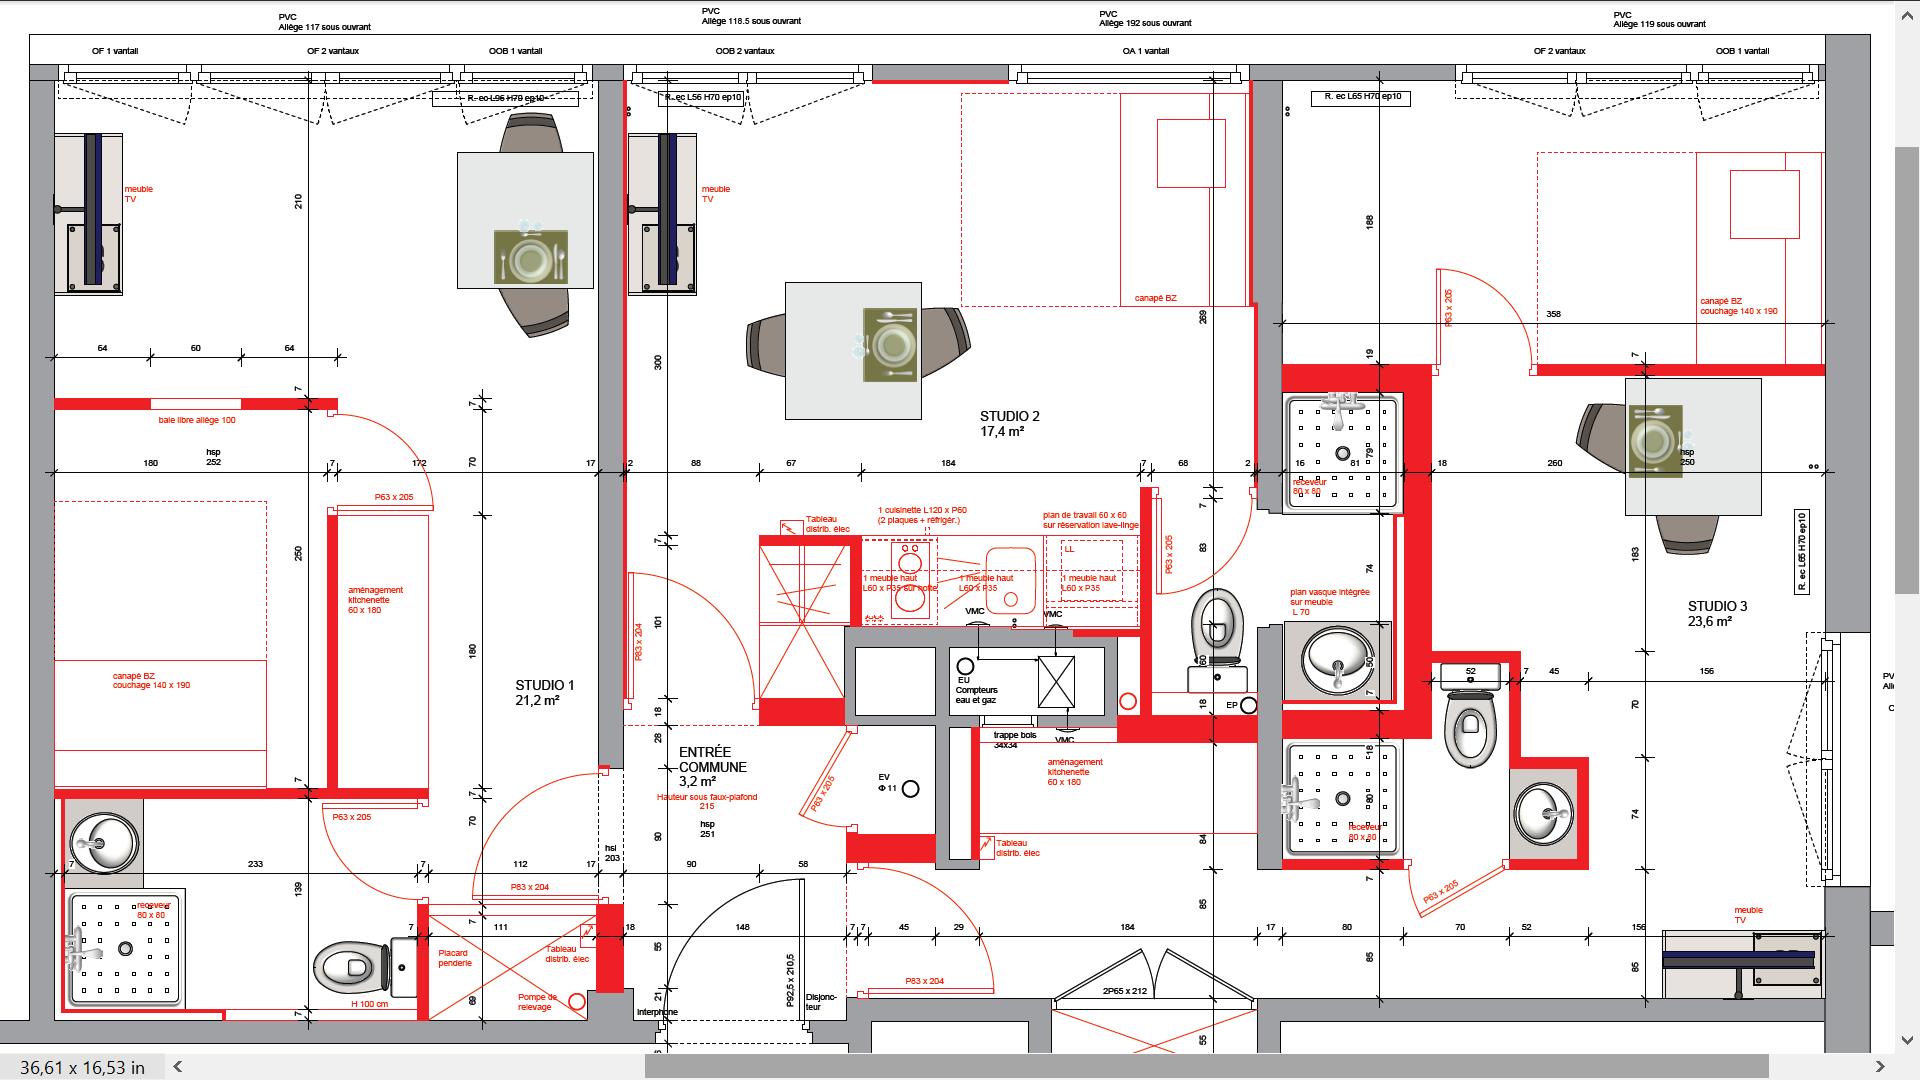 View larger image division dun appartement de 67 m² en 3 appartements plan après travaux